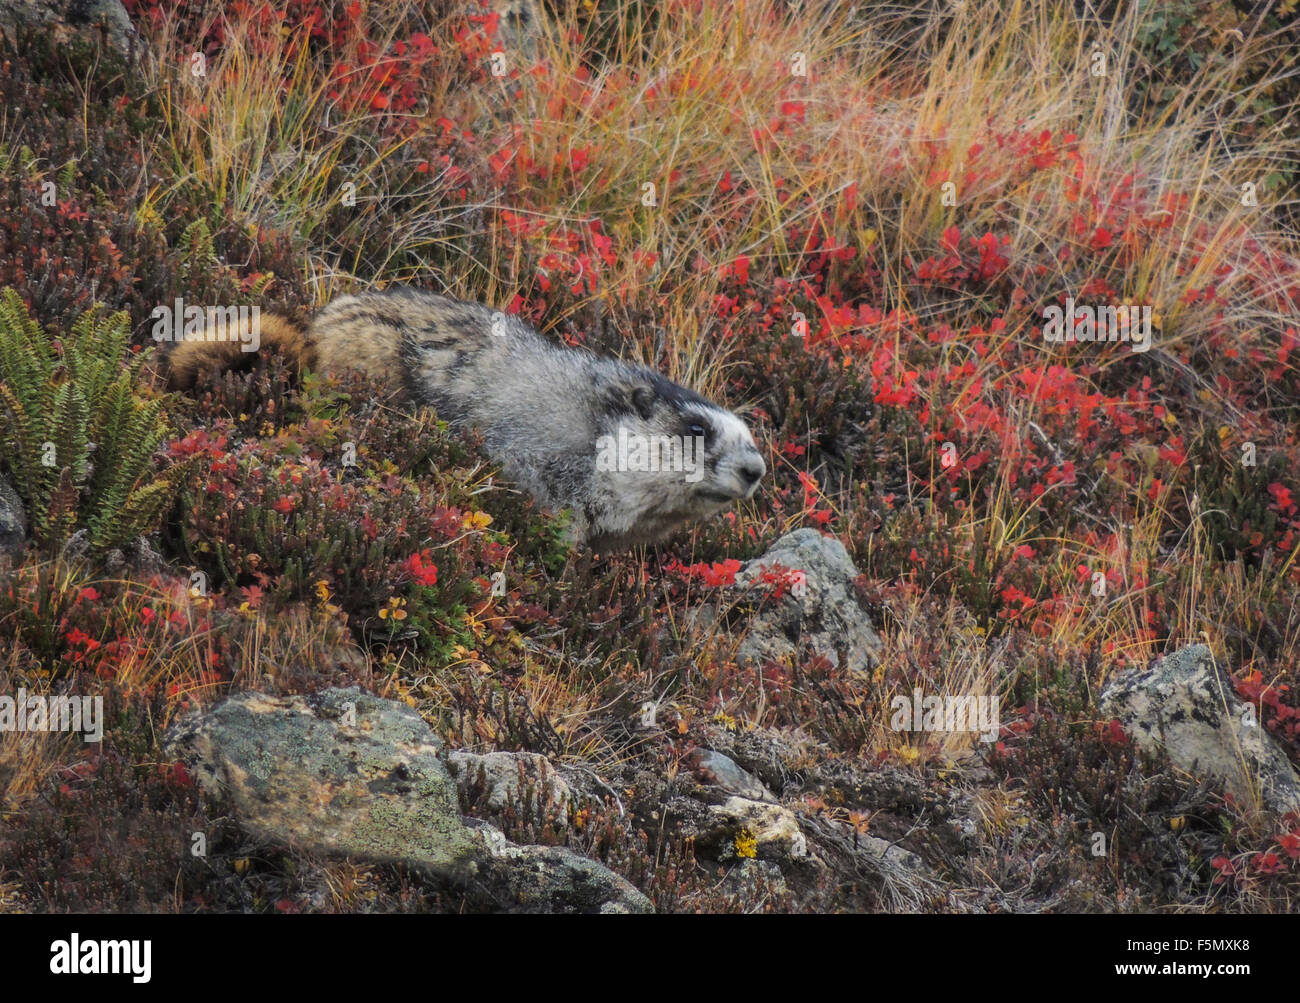 A Hoary Marmot (Marmota caligata) suns on a rocky slope near its burrow at or above tree line in Denali National - Stock Image